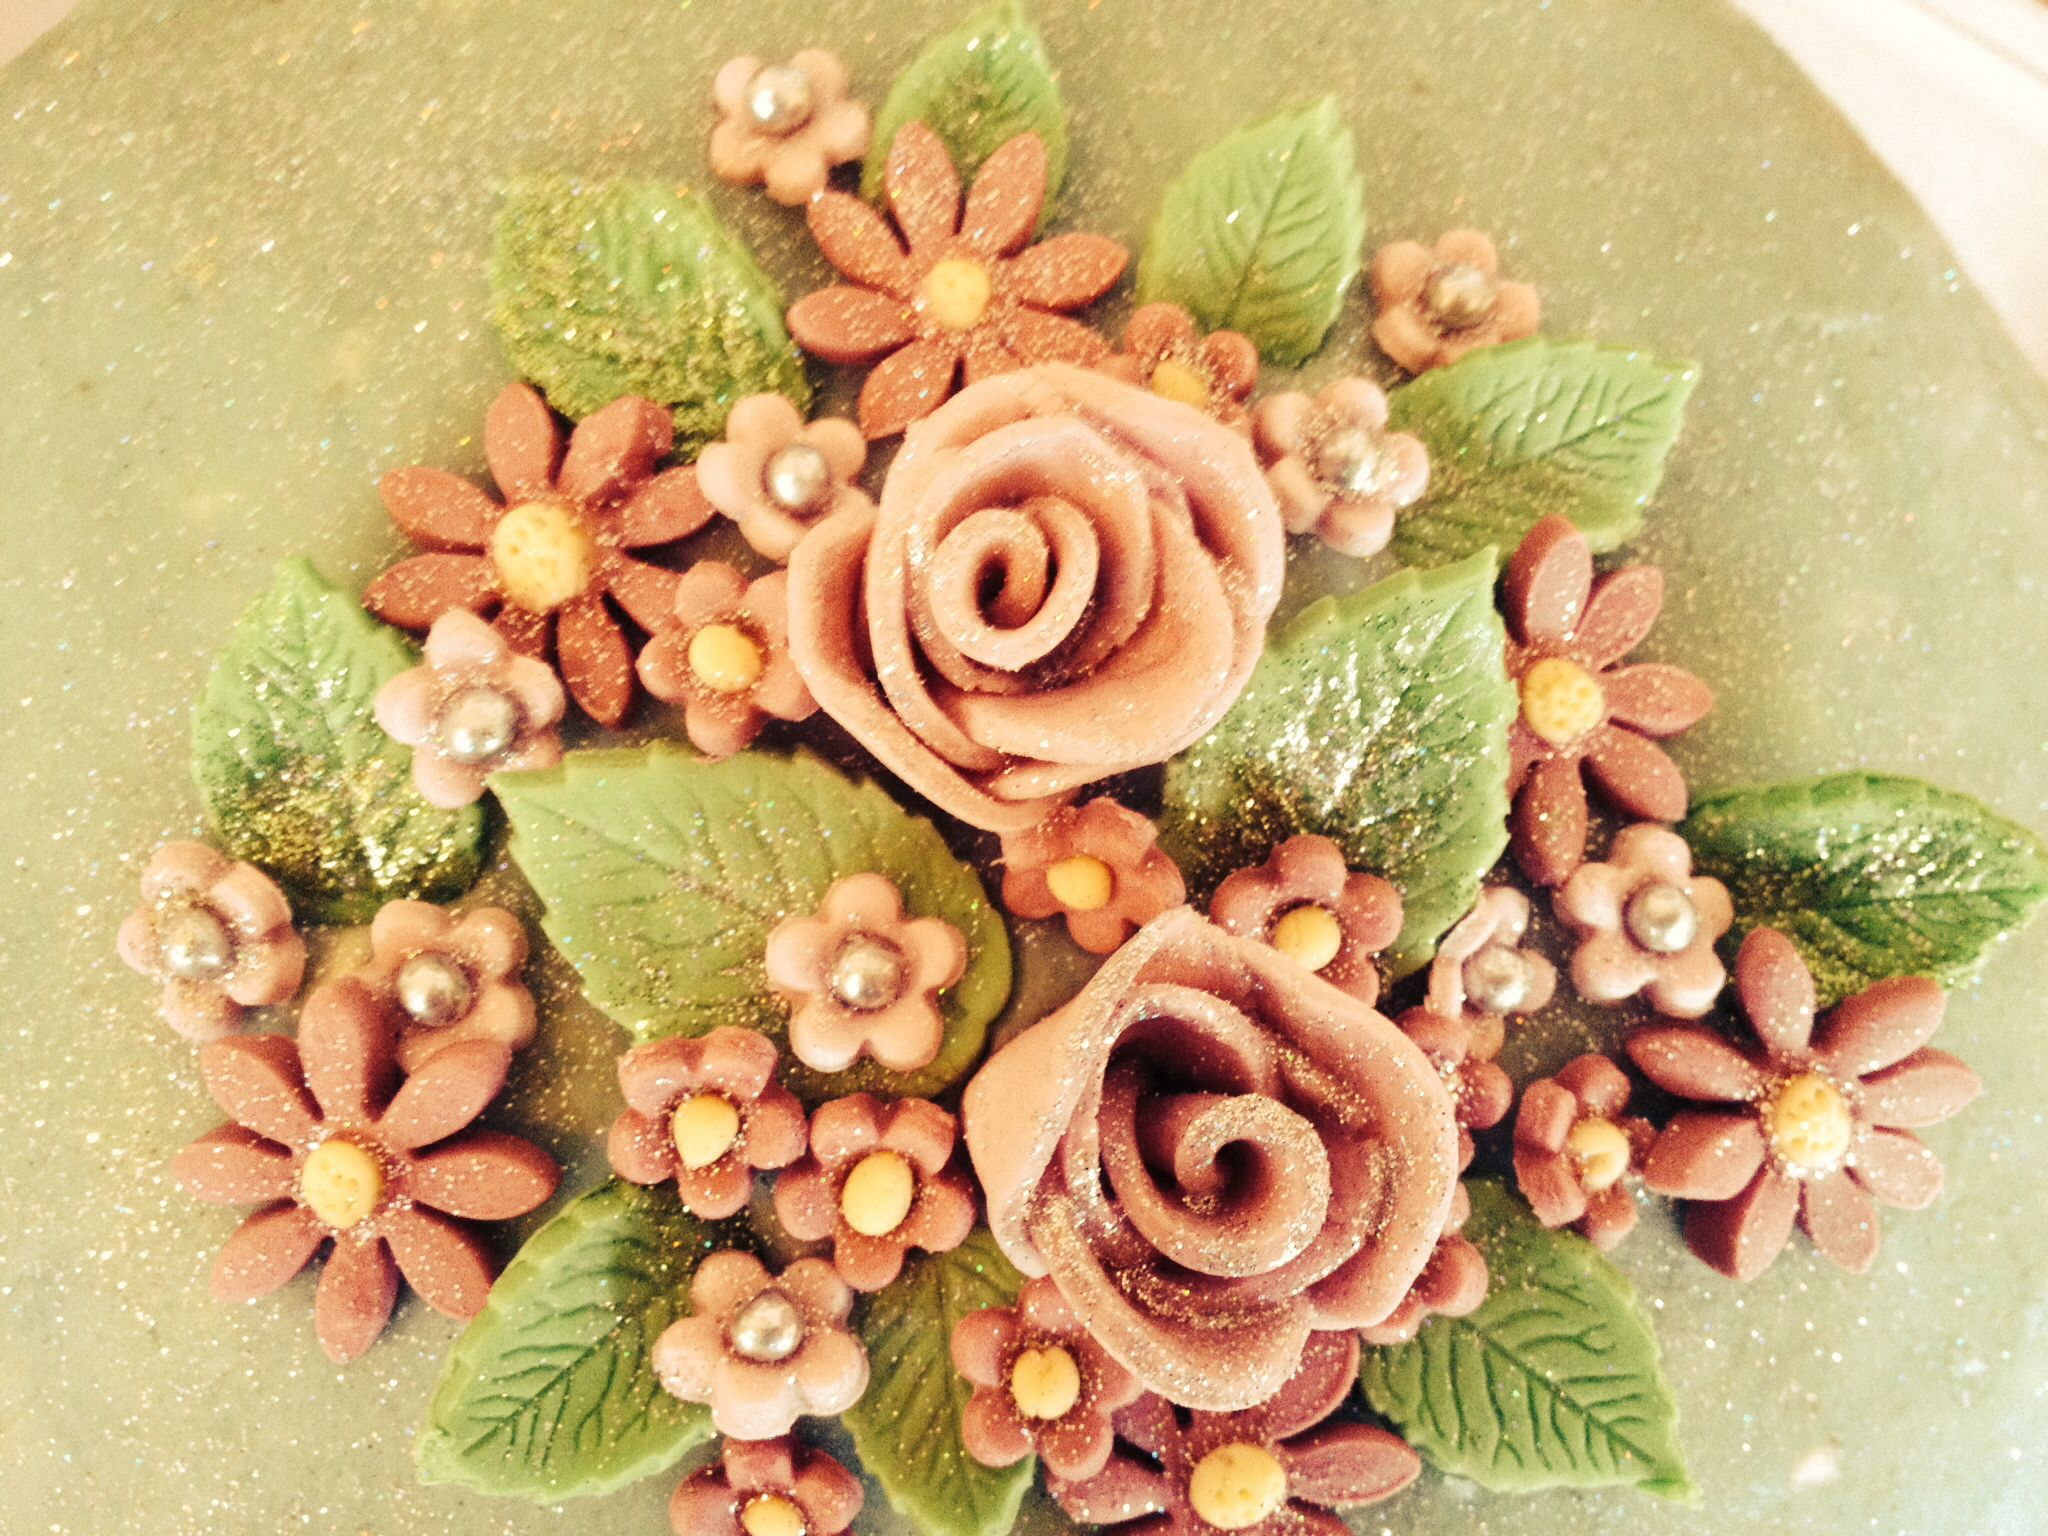 Sugar craft flowers for my sisters' cake